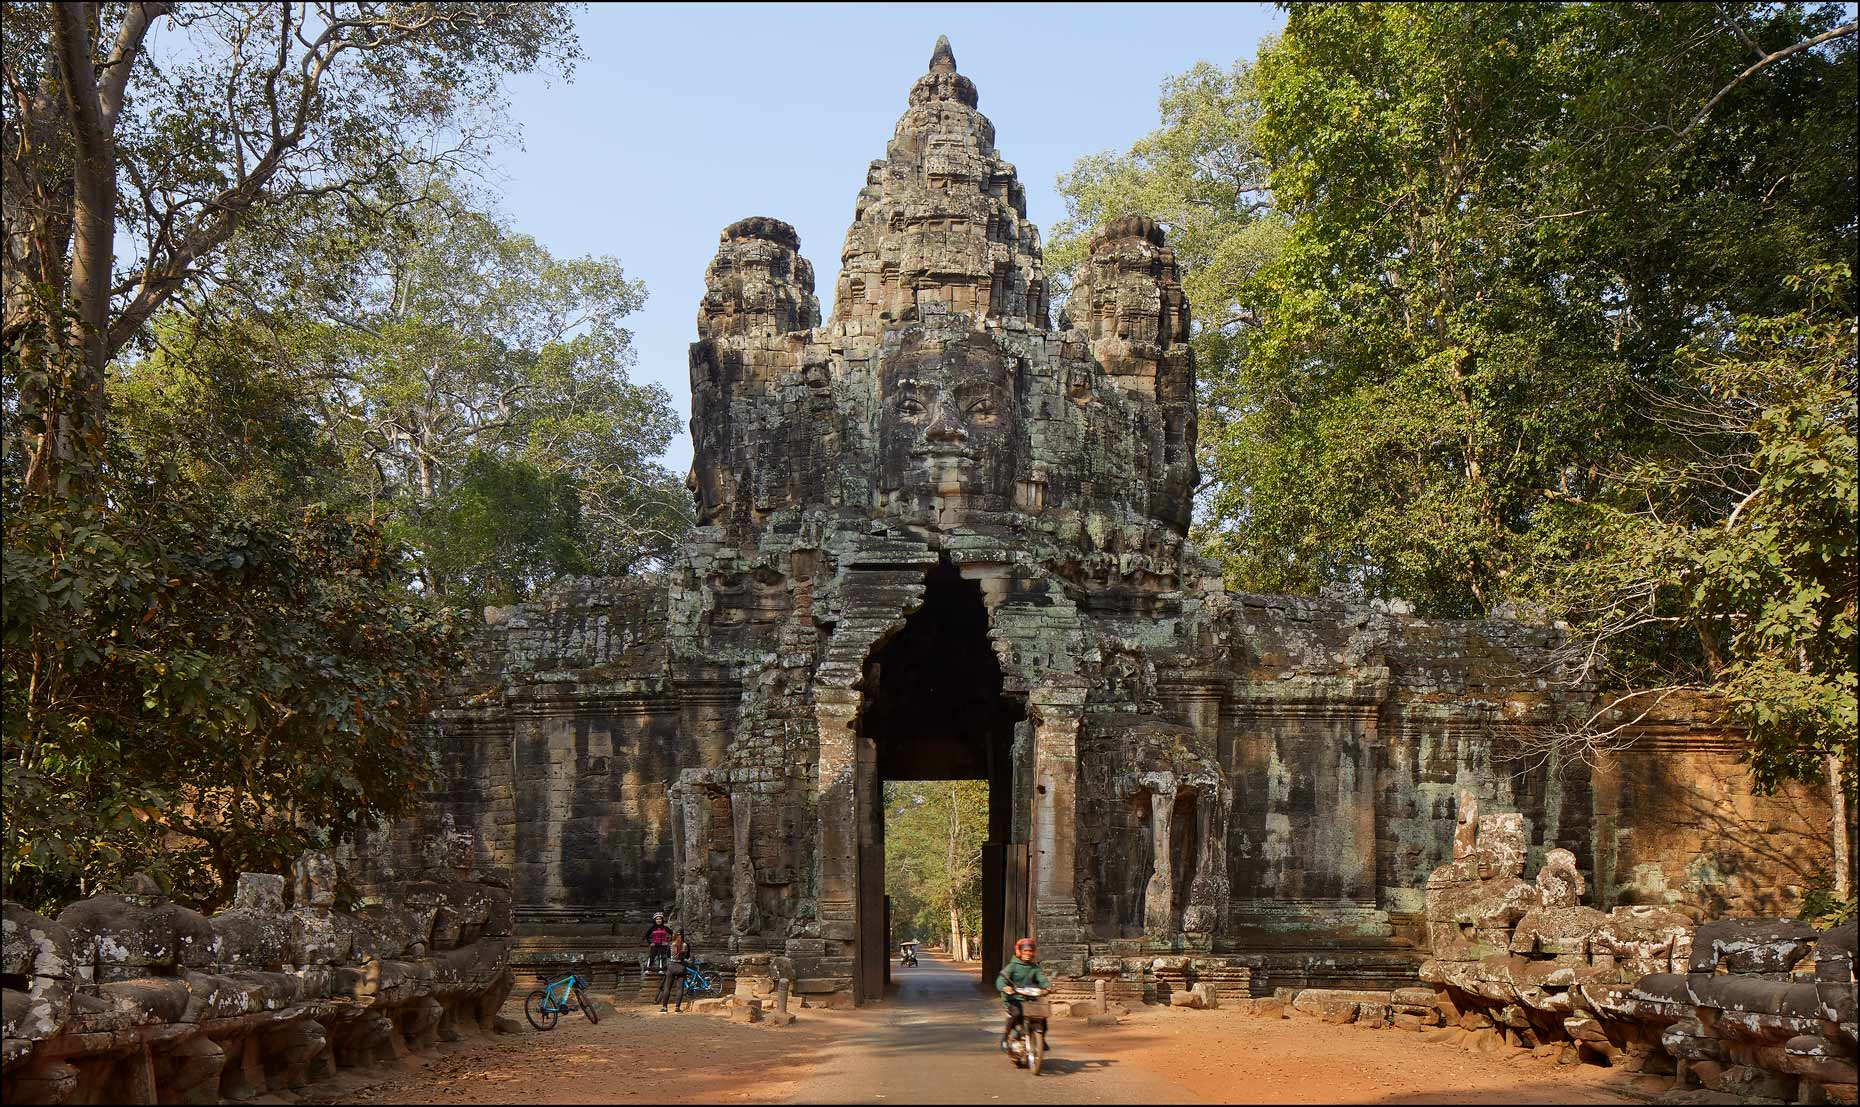 10_3250D-05G-Angkor-Thom-North-Gate_9084rc